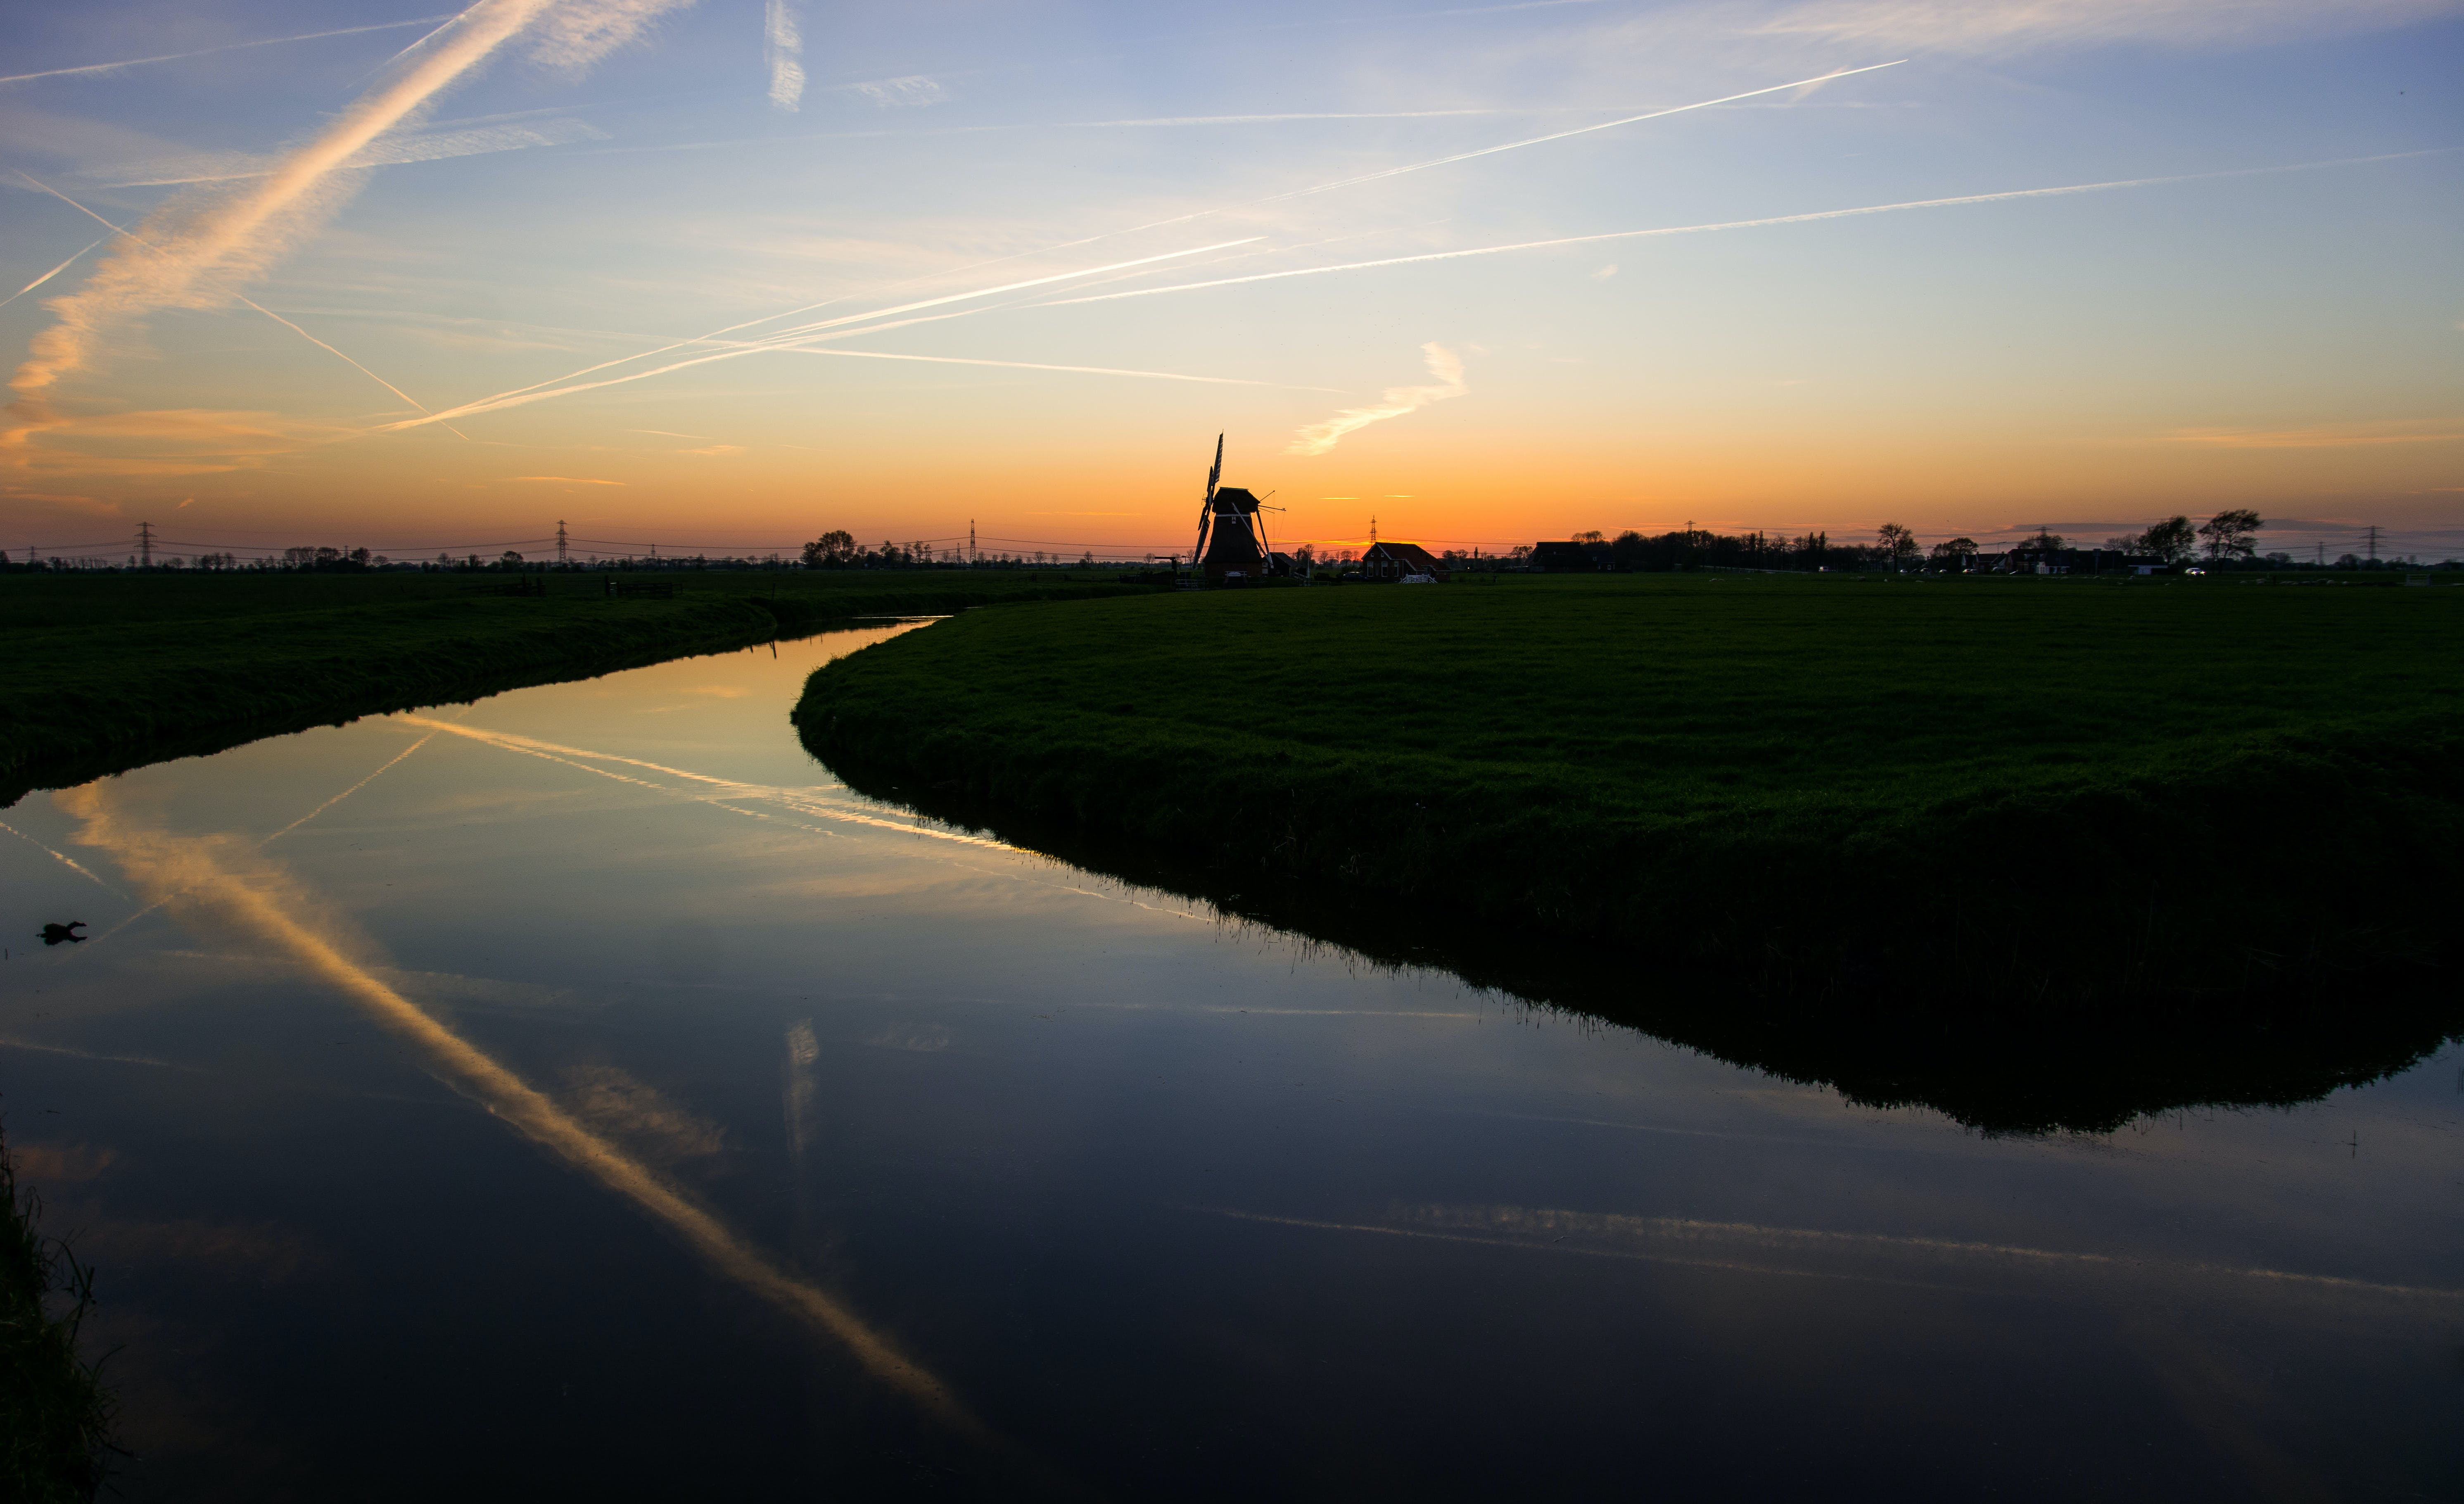 Body of Water With Windmill in Vicinity